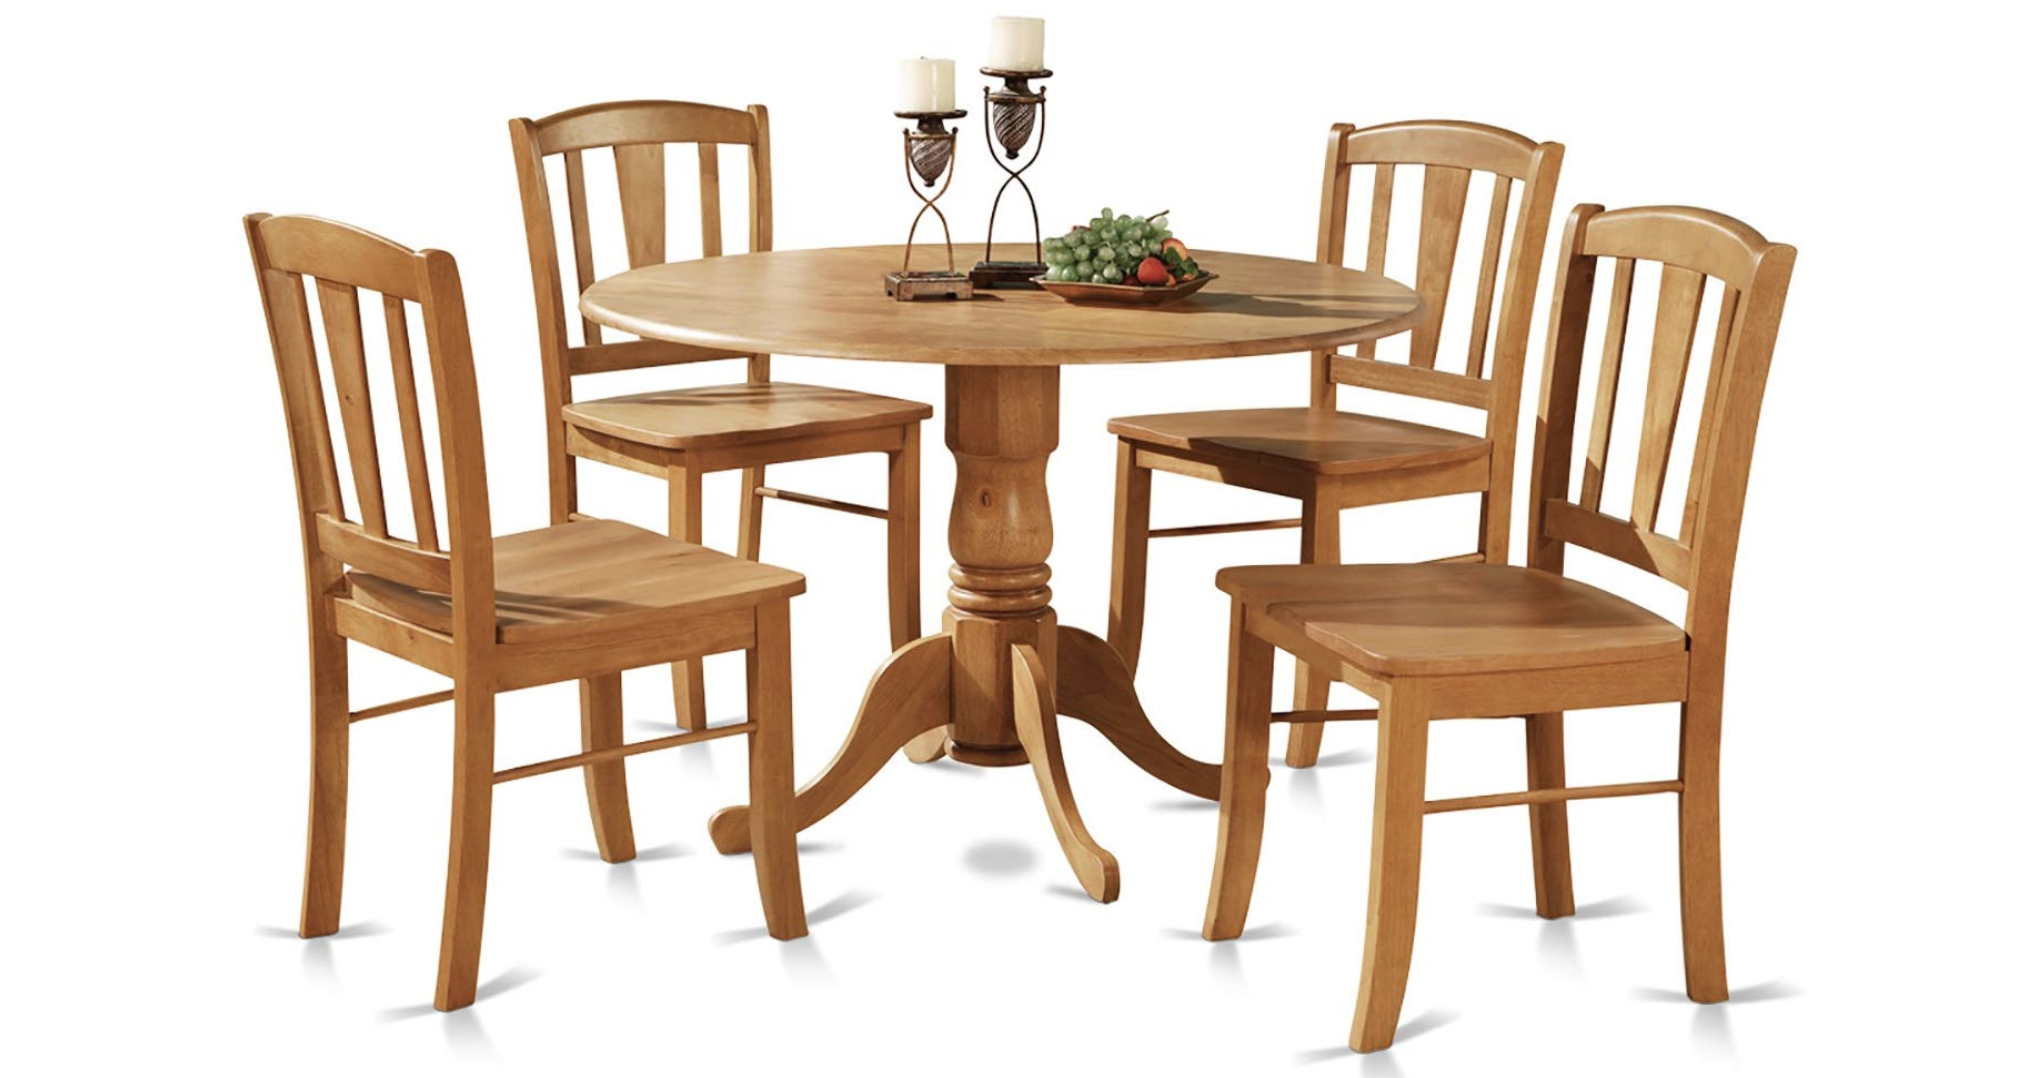 Top 10 Best Dining Room Tables of 2020 Review